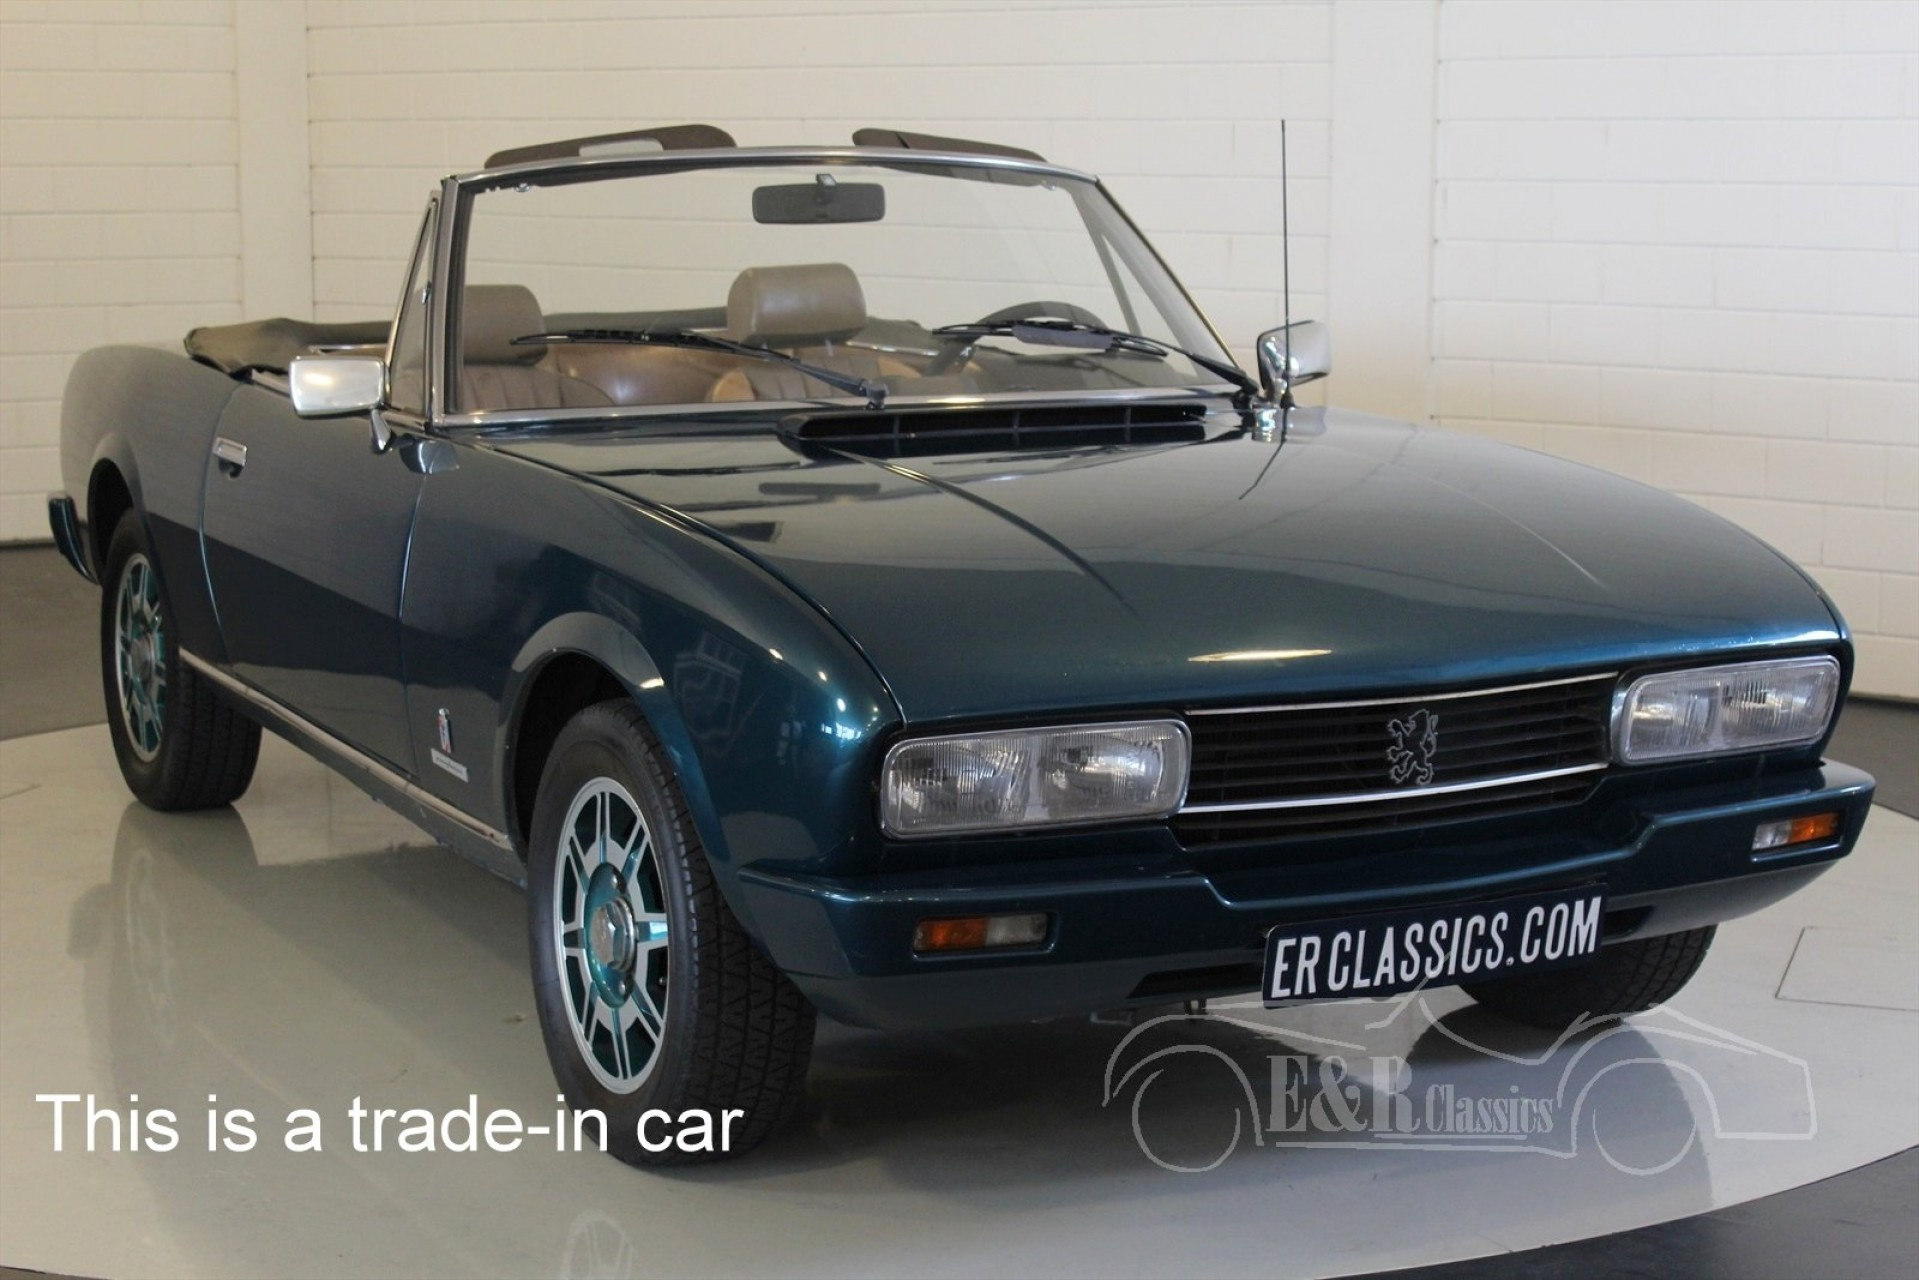 Peugeot 504 Cabriolet 1980 For Sale At Erclassics